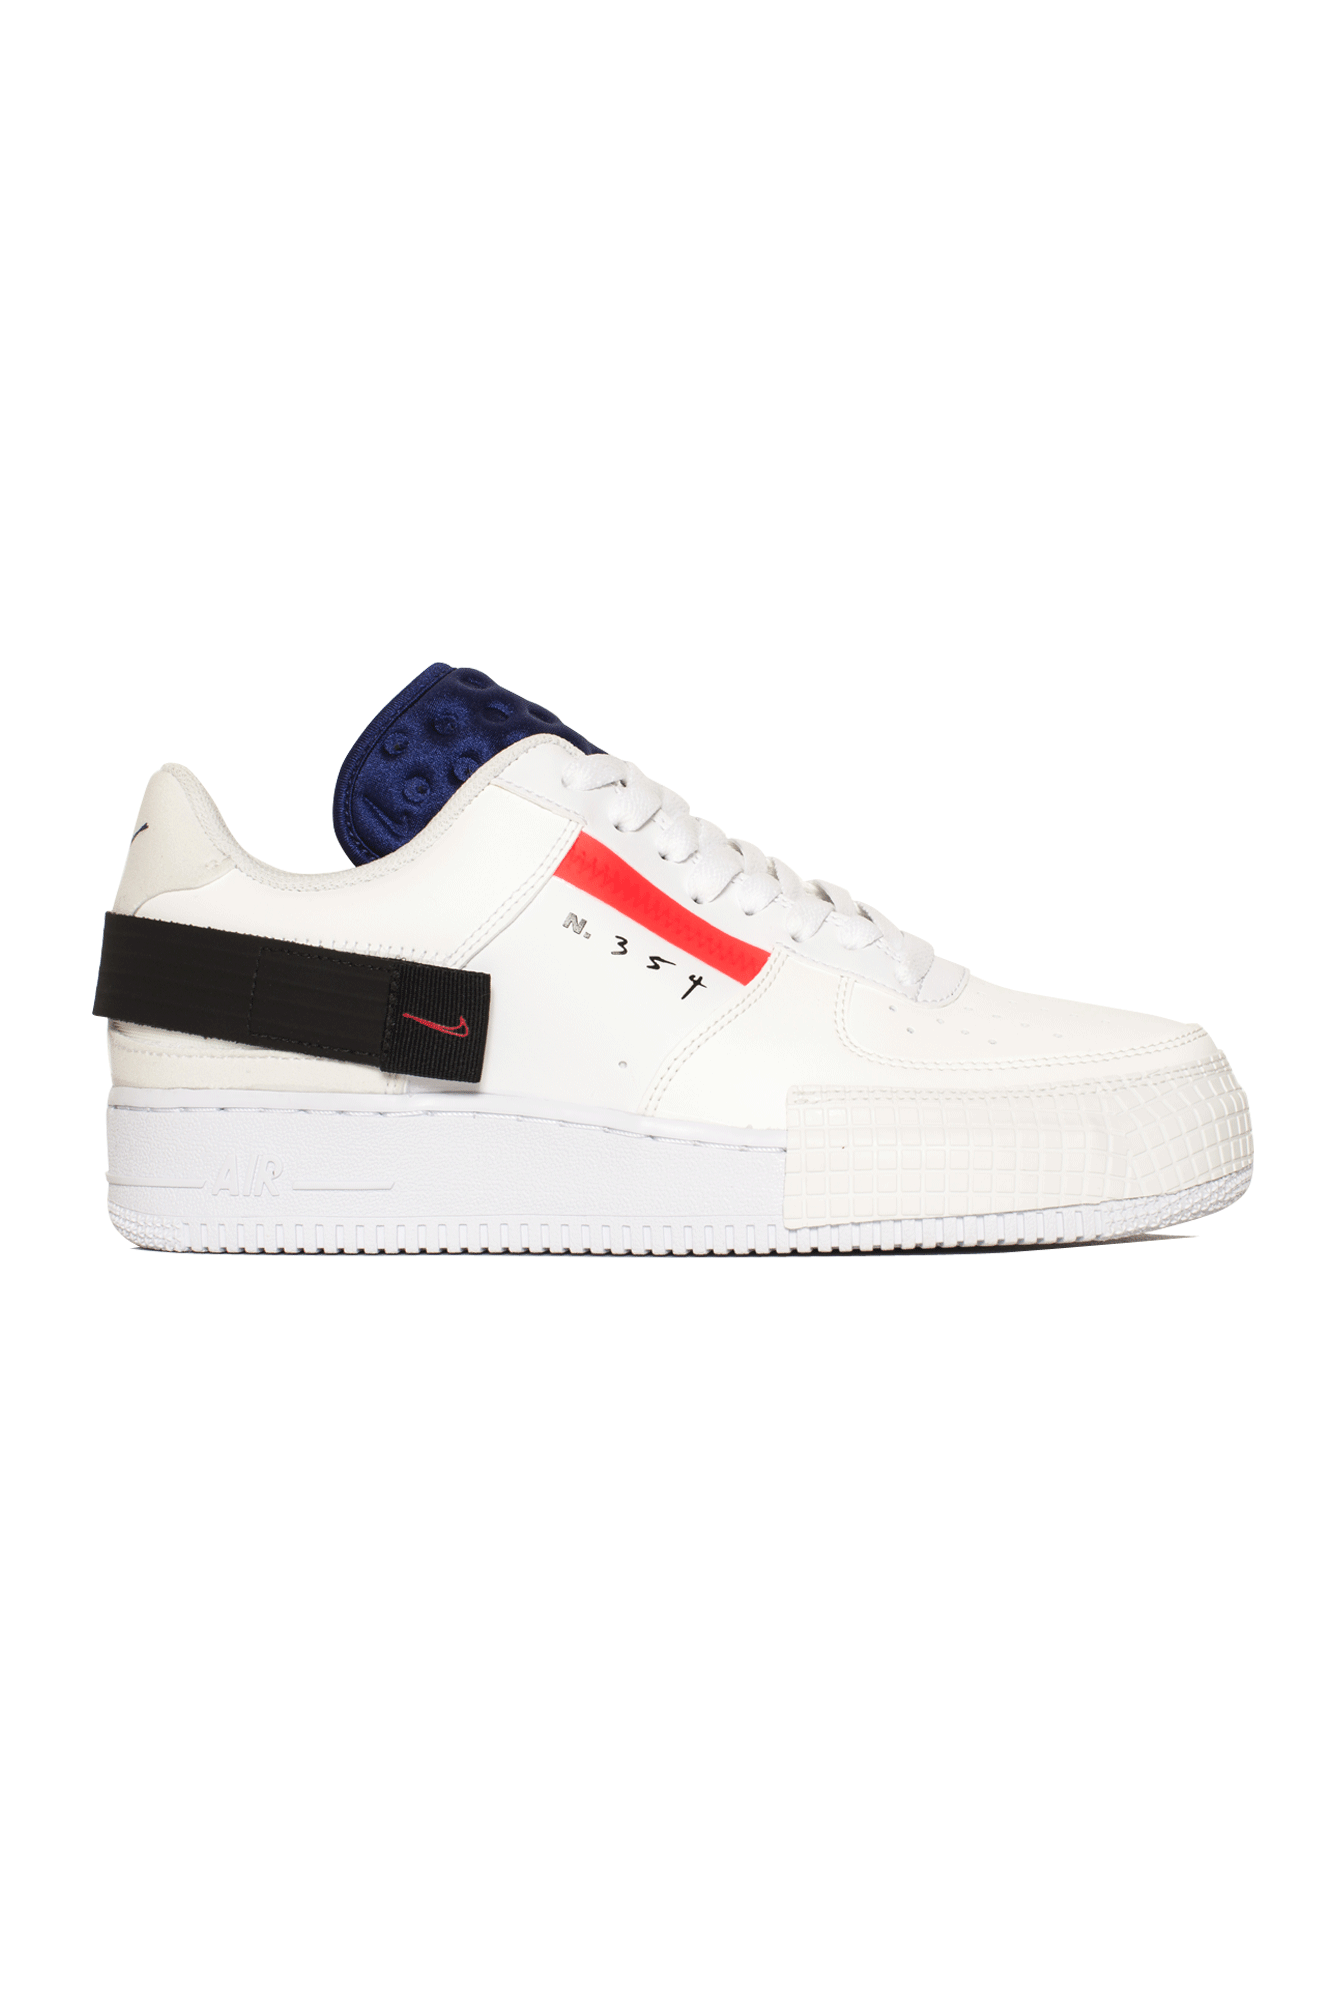 Nike Sneakers AF1-Type White CI0054-#000#100#4 - One Block Down